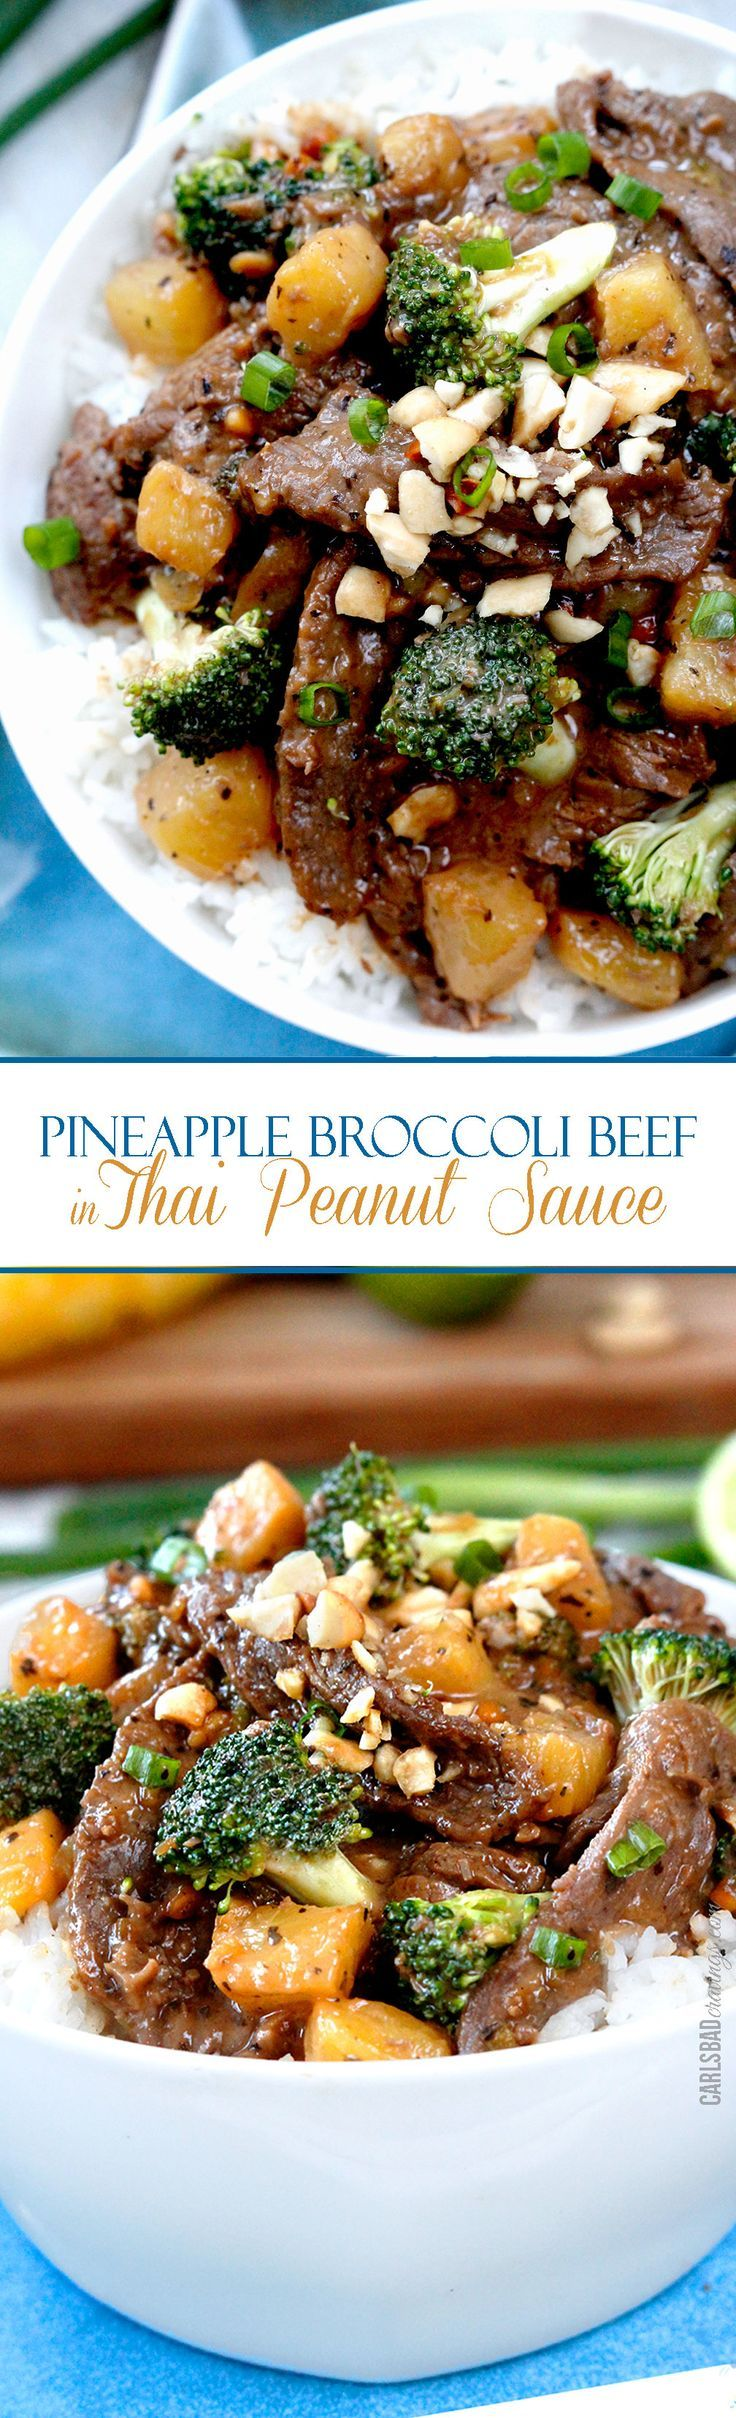 Beef and Broccoli meets Peanut Sauce for an explosion of flavor! After marinating the beef, it takes LESS THAN 15 minutes to throw together!